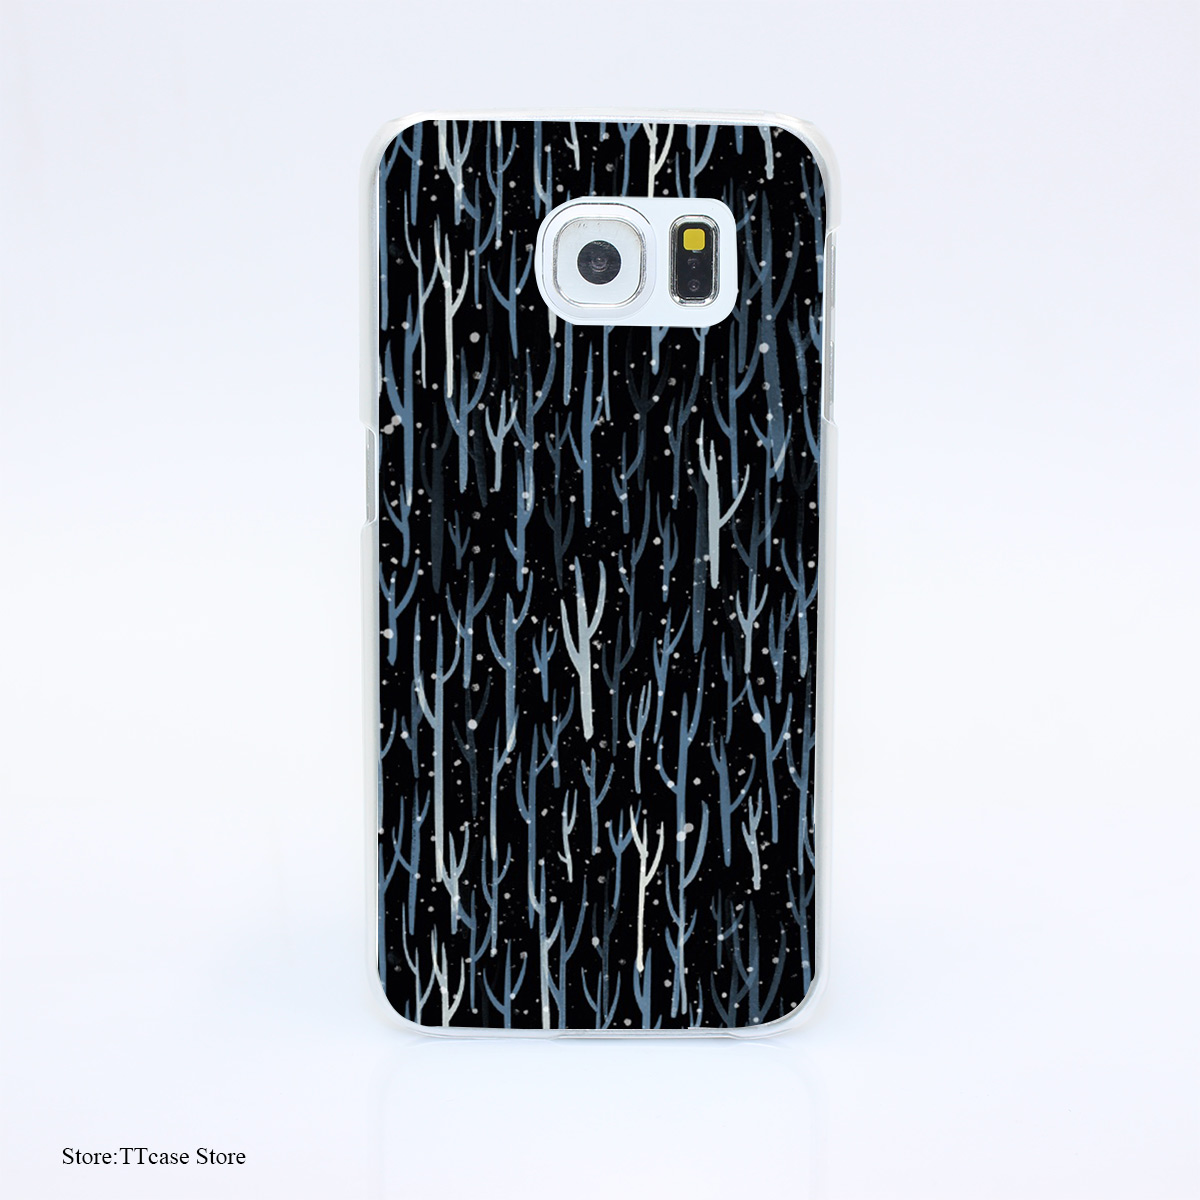 3169G Stopping By Woods On a Snowy Evening Print Hard Transparent Case Cover for Galaxy S3 S4 S5 & Mini S6 S7 & edge